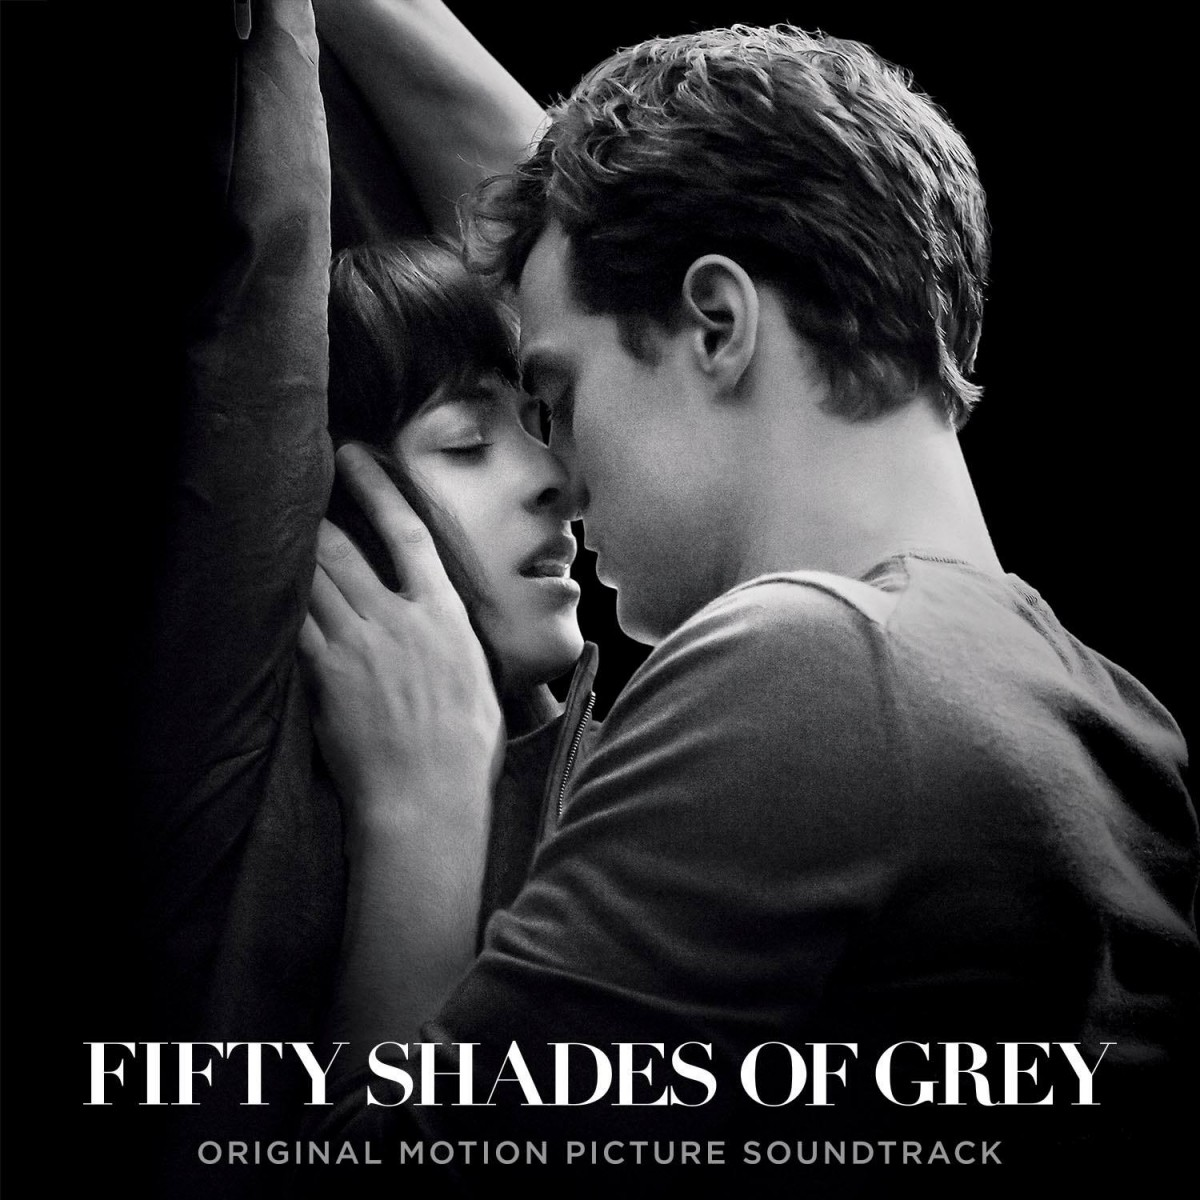 50 Shades of Grey Box Office Collection